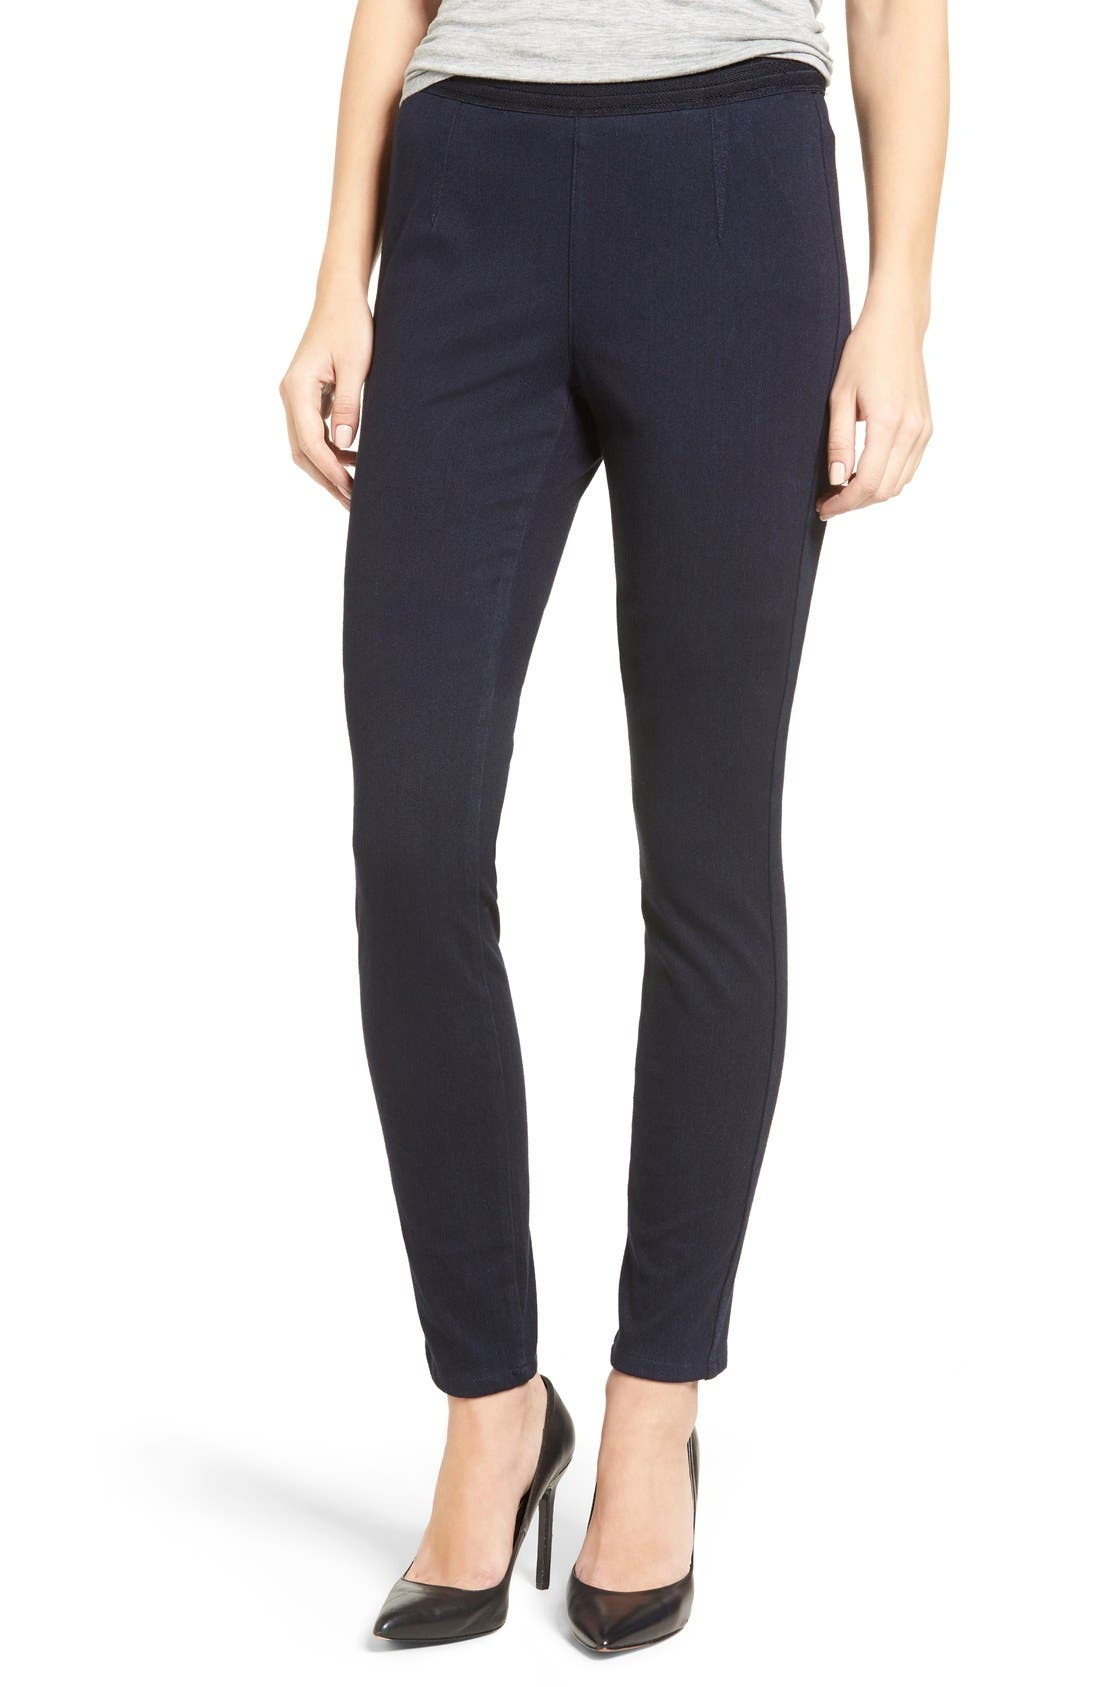 NYDJ Joanie Stretch Denim Leggings